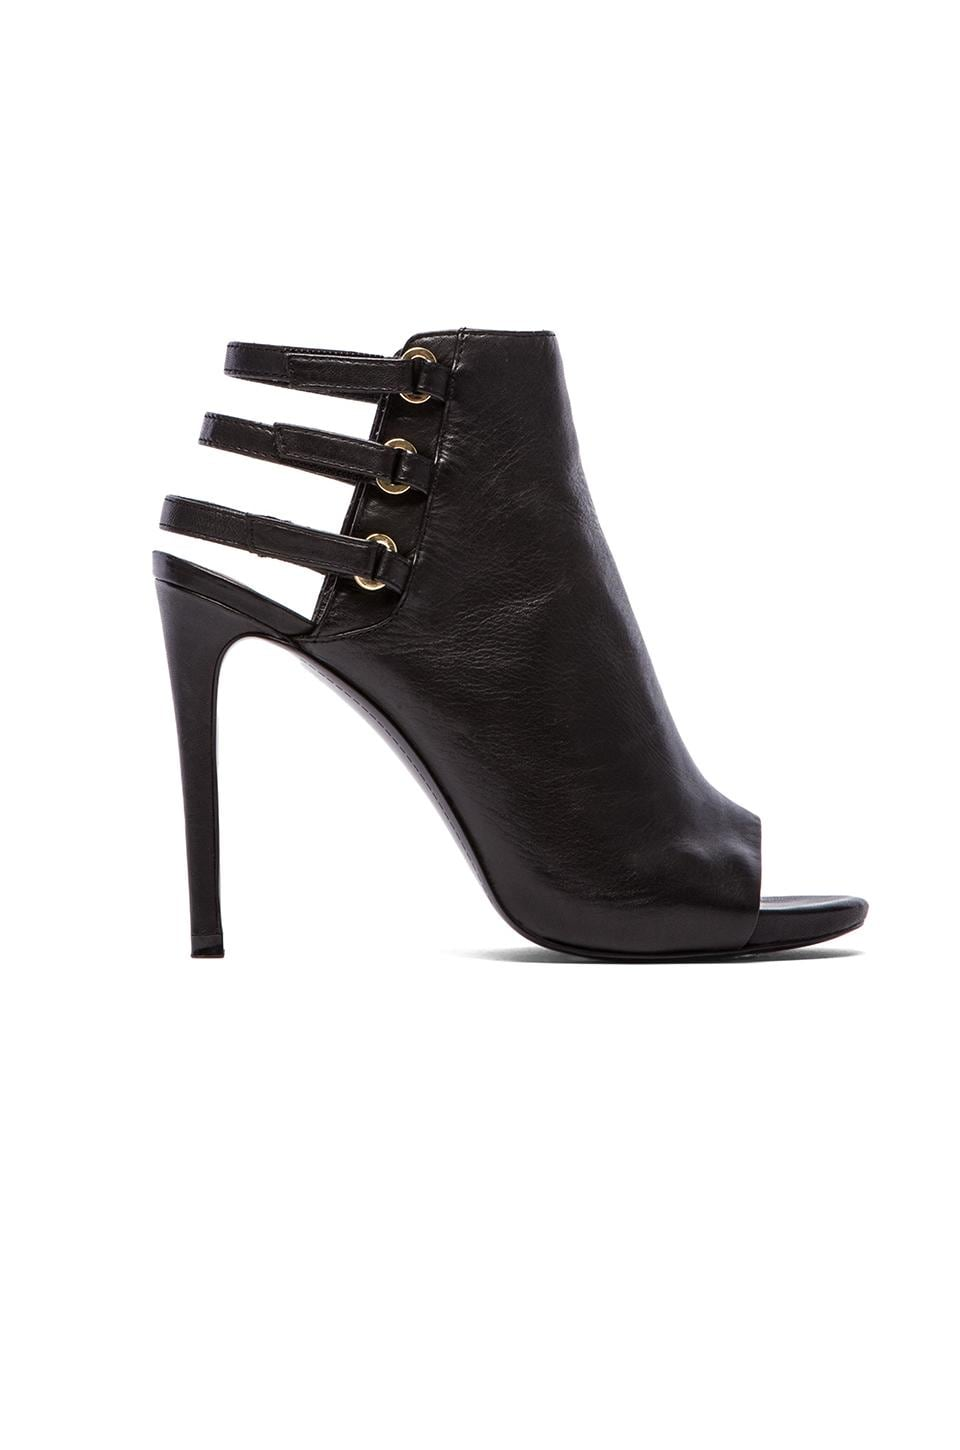 Vince Camuto Fenette Bootie in Black